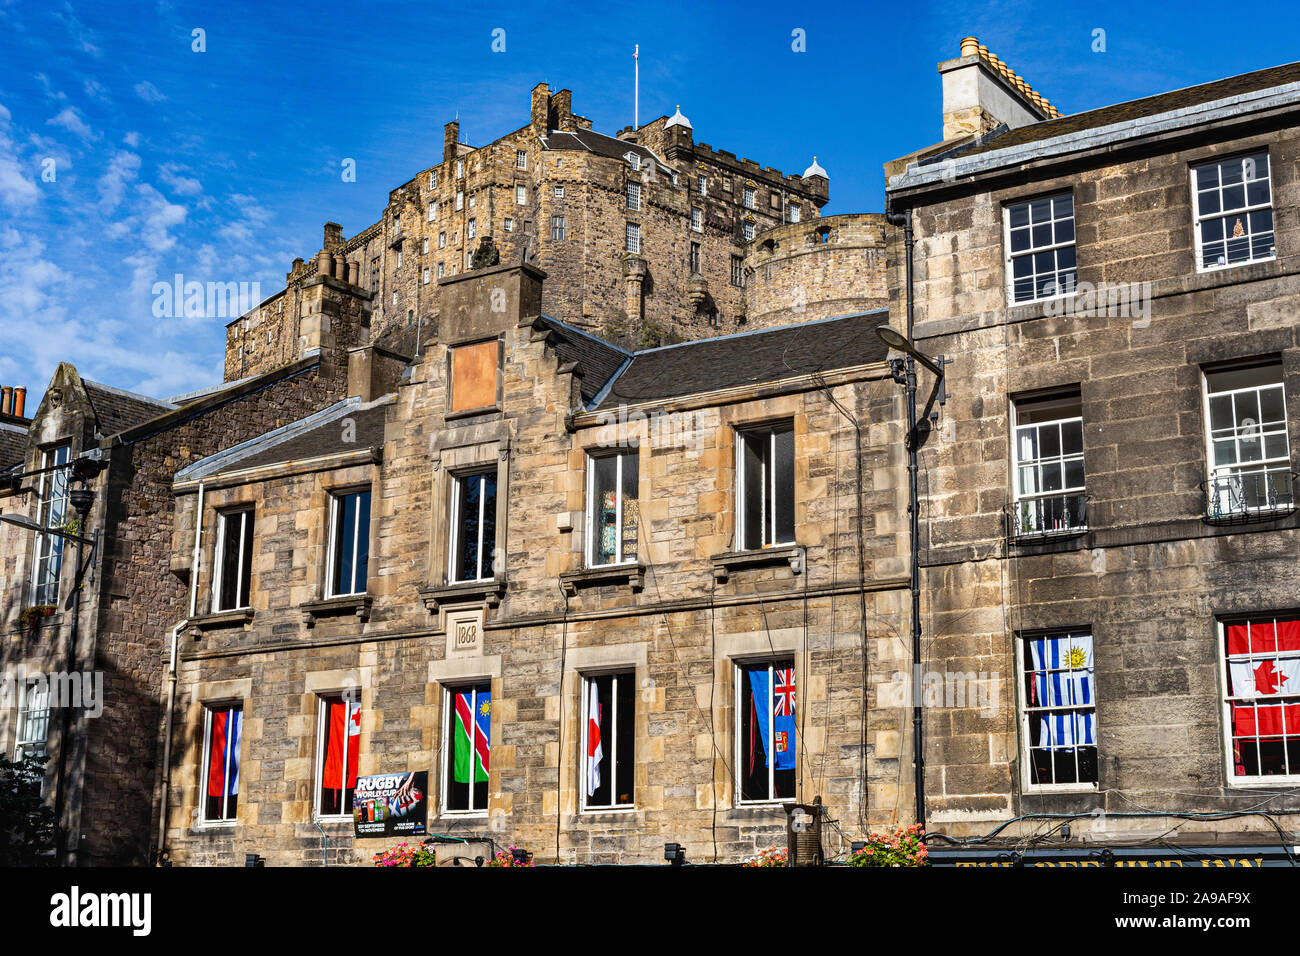 Close up Detail of Historic Buildings in the Grassmarket With View of Edinburgh Castle Towering Above with a Blue Sky #2. Edinburgh, Scotland. Stock Photo